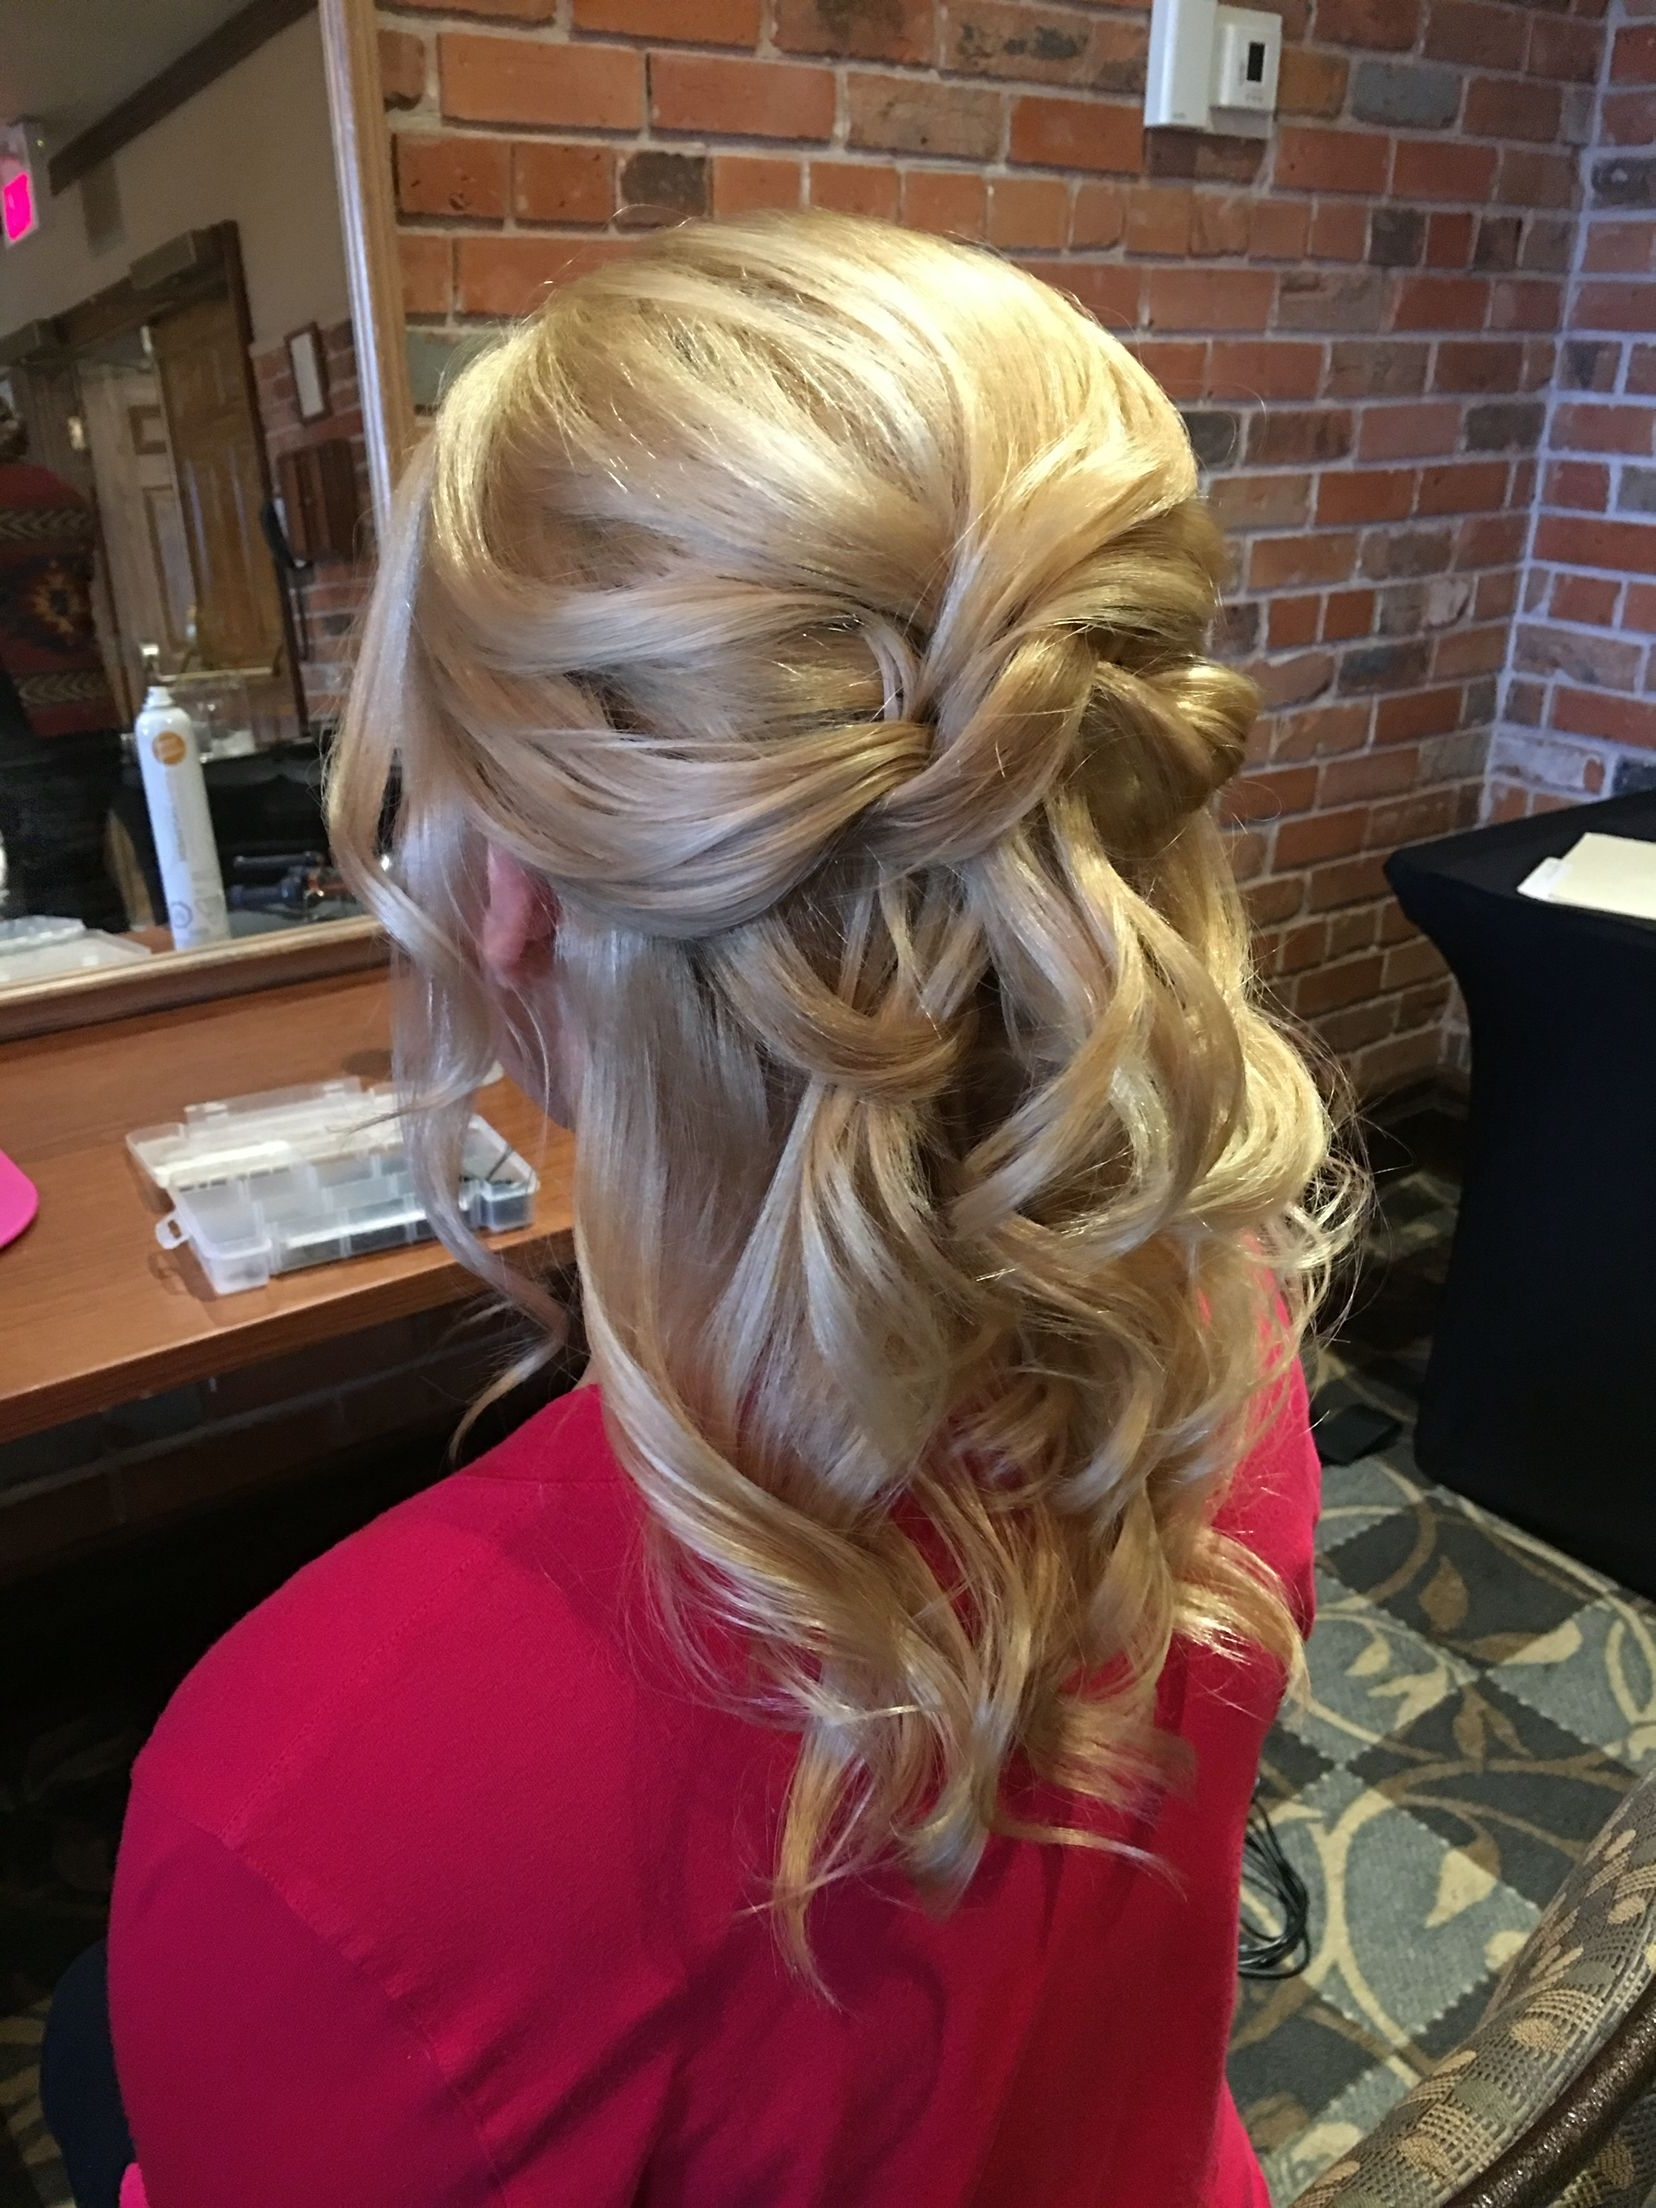 Half Up Half Down Wedding Hair For Bride Or Mother Of The Bride Pertaining To Mother Of The Bride Updos For Long Hair (View 7 of 15)